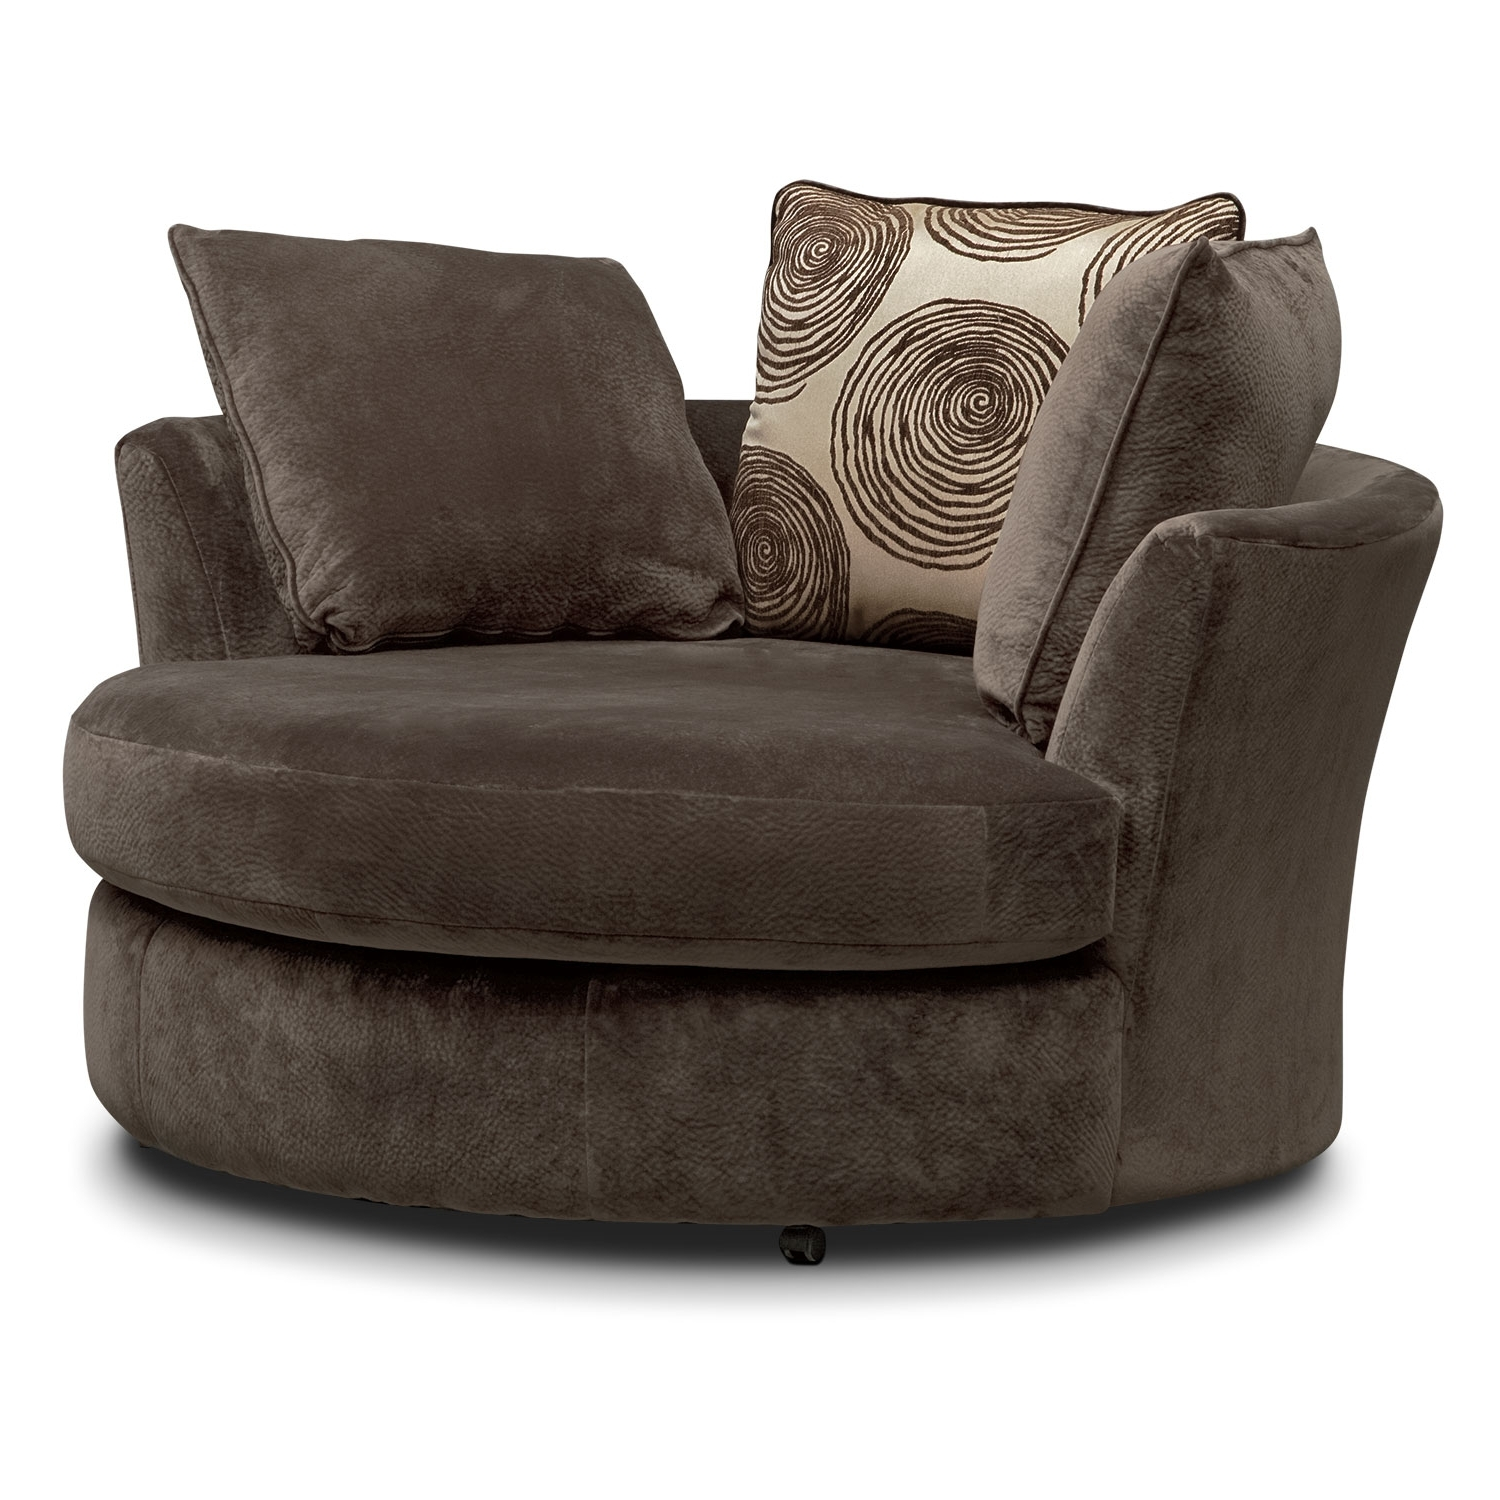 Most Popular Cordelle 2 Piece Right Facing Chaise Sectional And Swivel Chair Inside Value City Furniture Chaises (View 6 of 15)